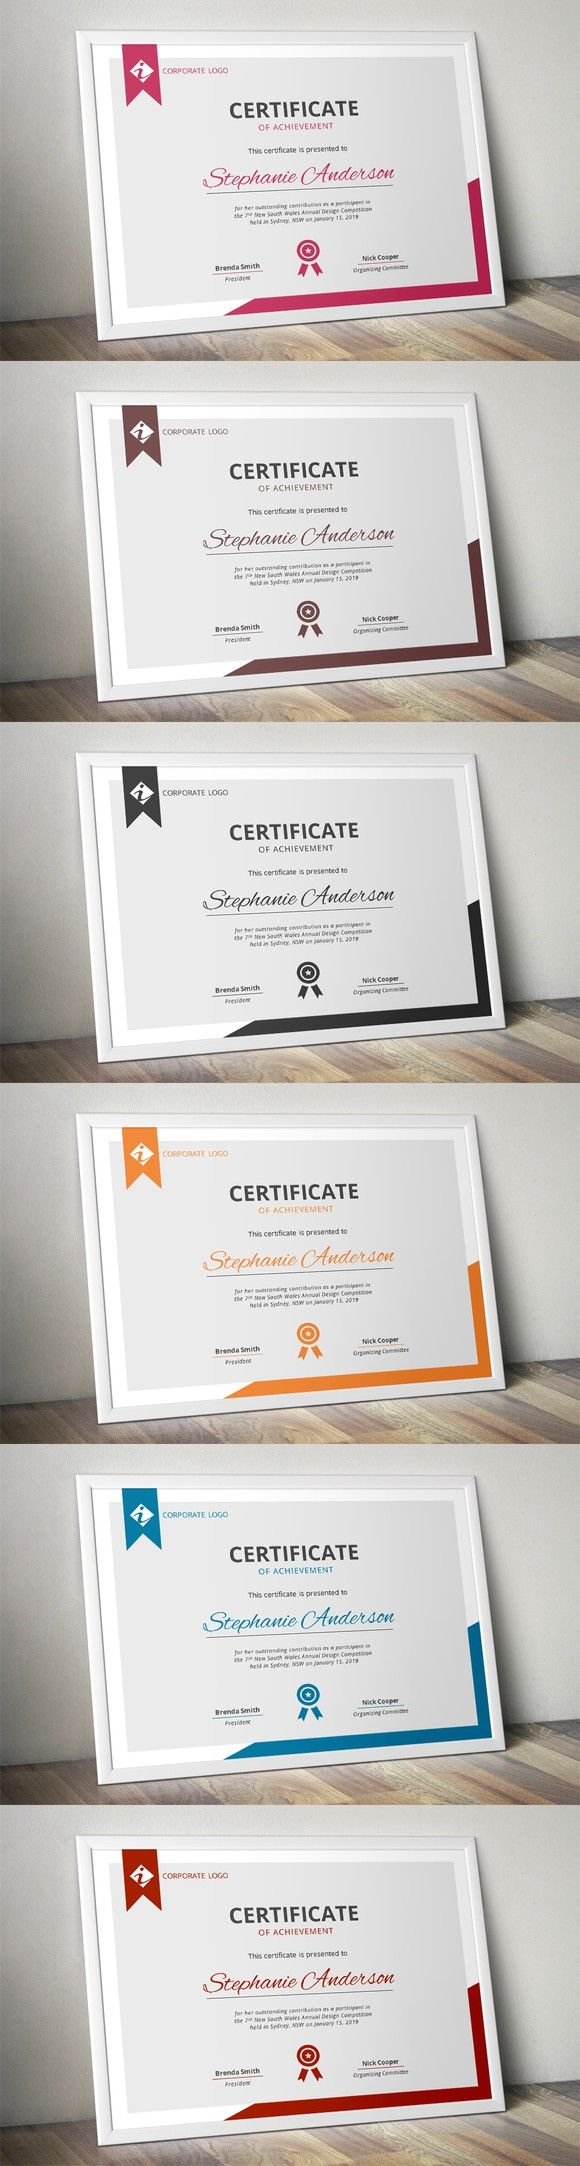 Best 25 certificate templates ideas on pinterest award template modern ms word certificate template stationery templates 500 yadclub Image collections